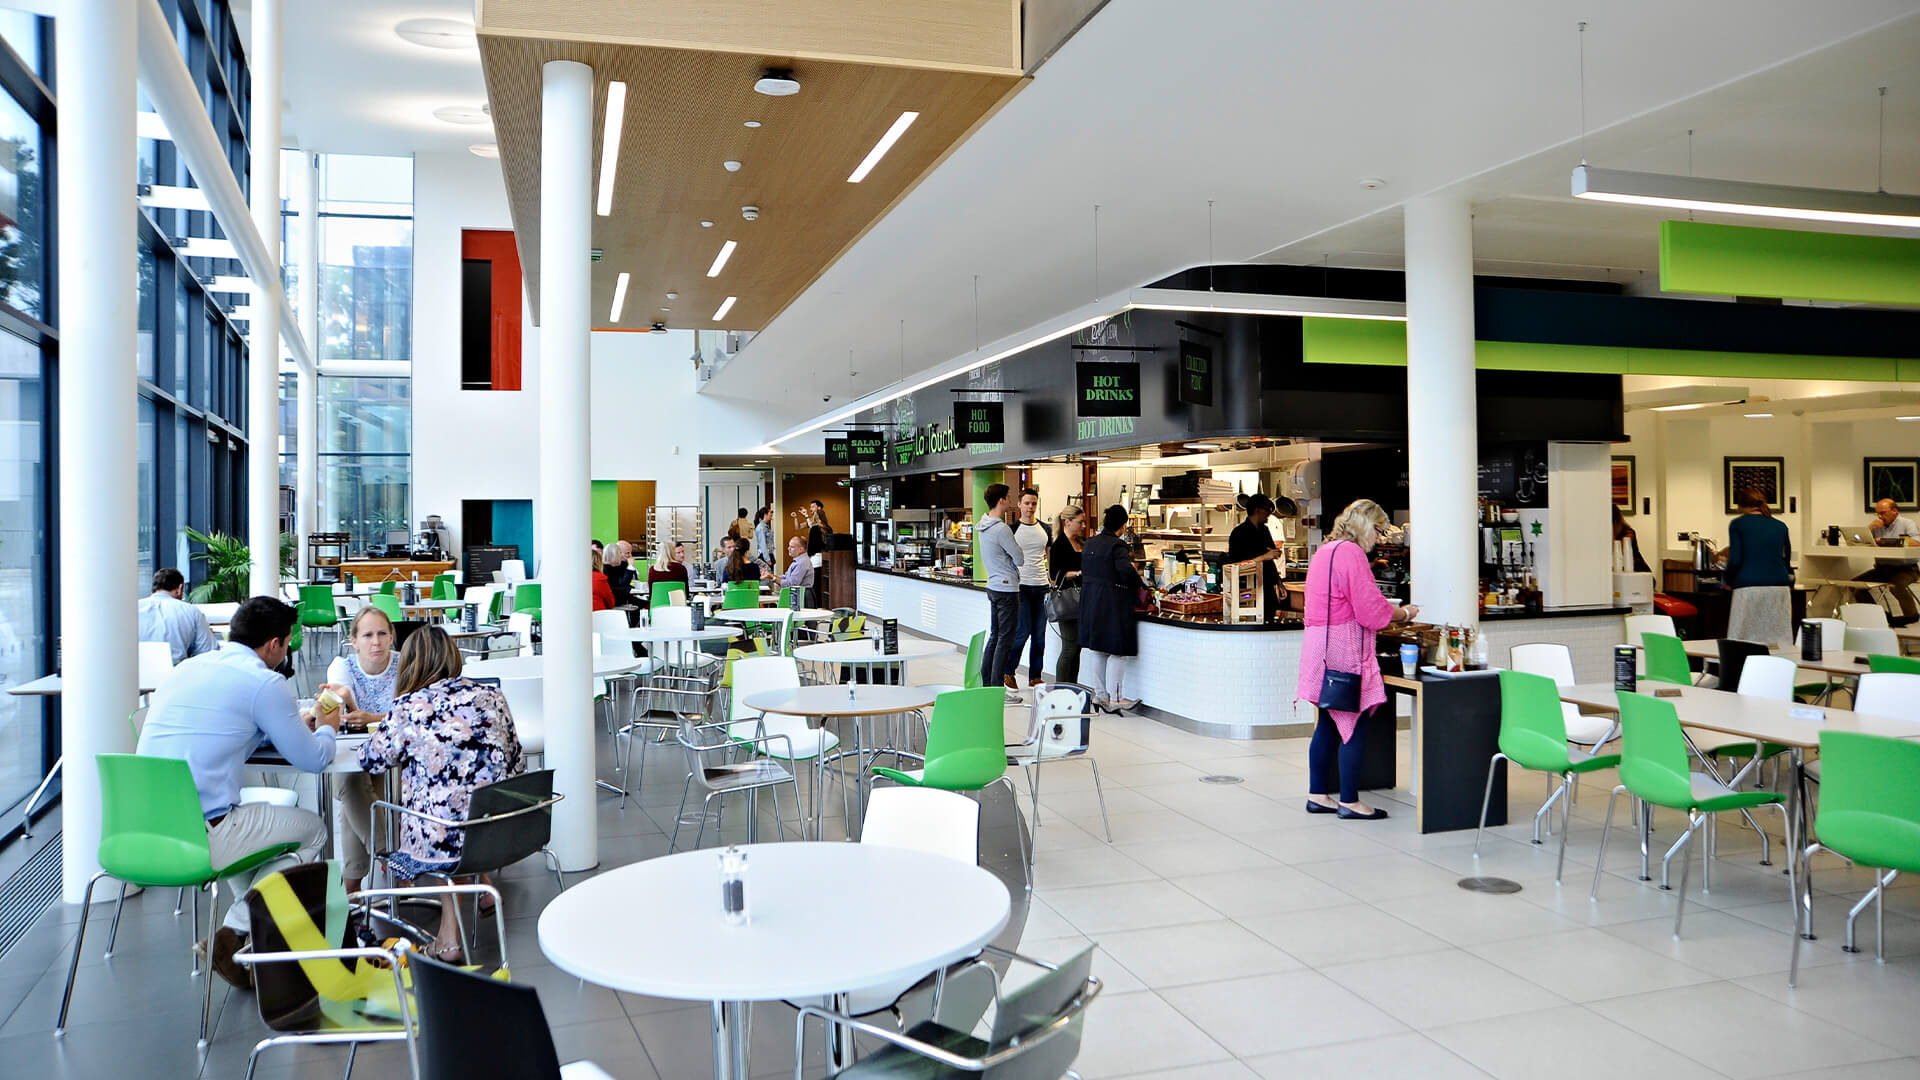 Students using the La Touche cafe at University of Exeter campus